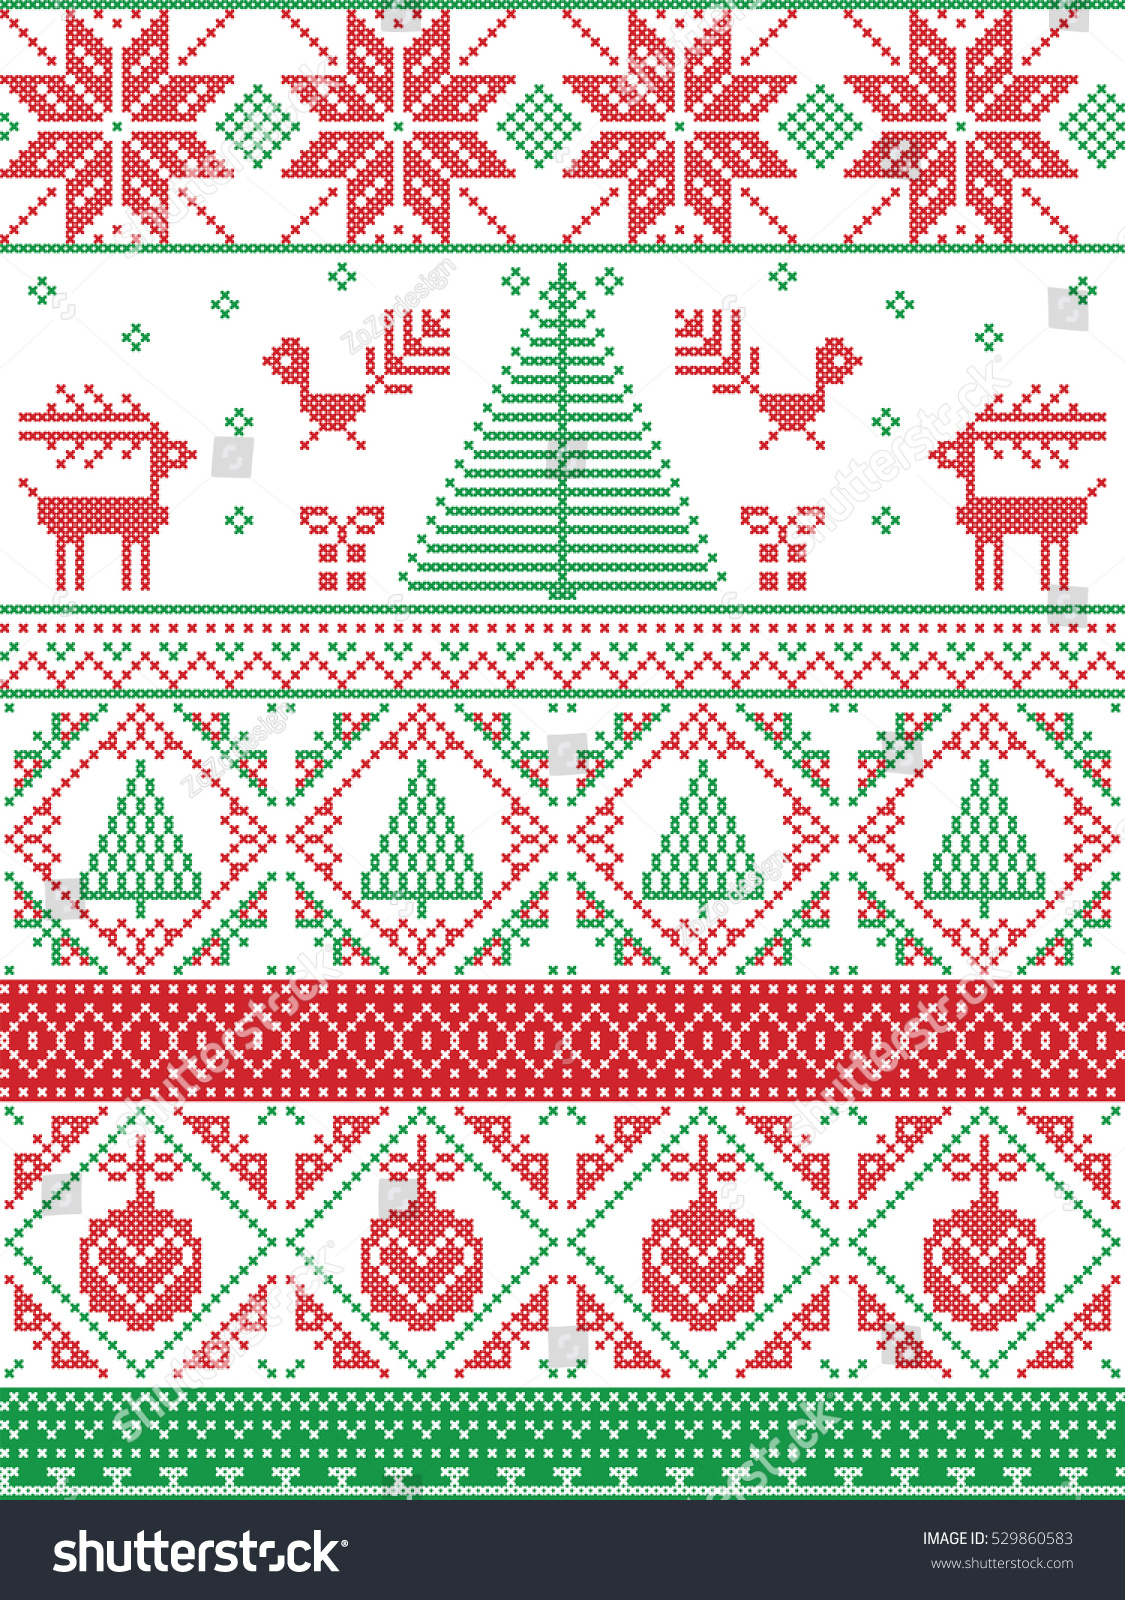 Norwegian Christmas.Scandinavian Inspired By Norwegian Christmas Festive Stock